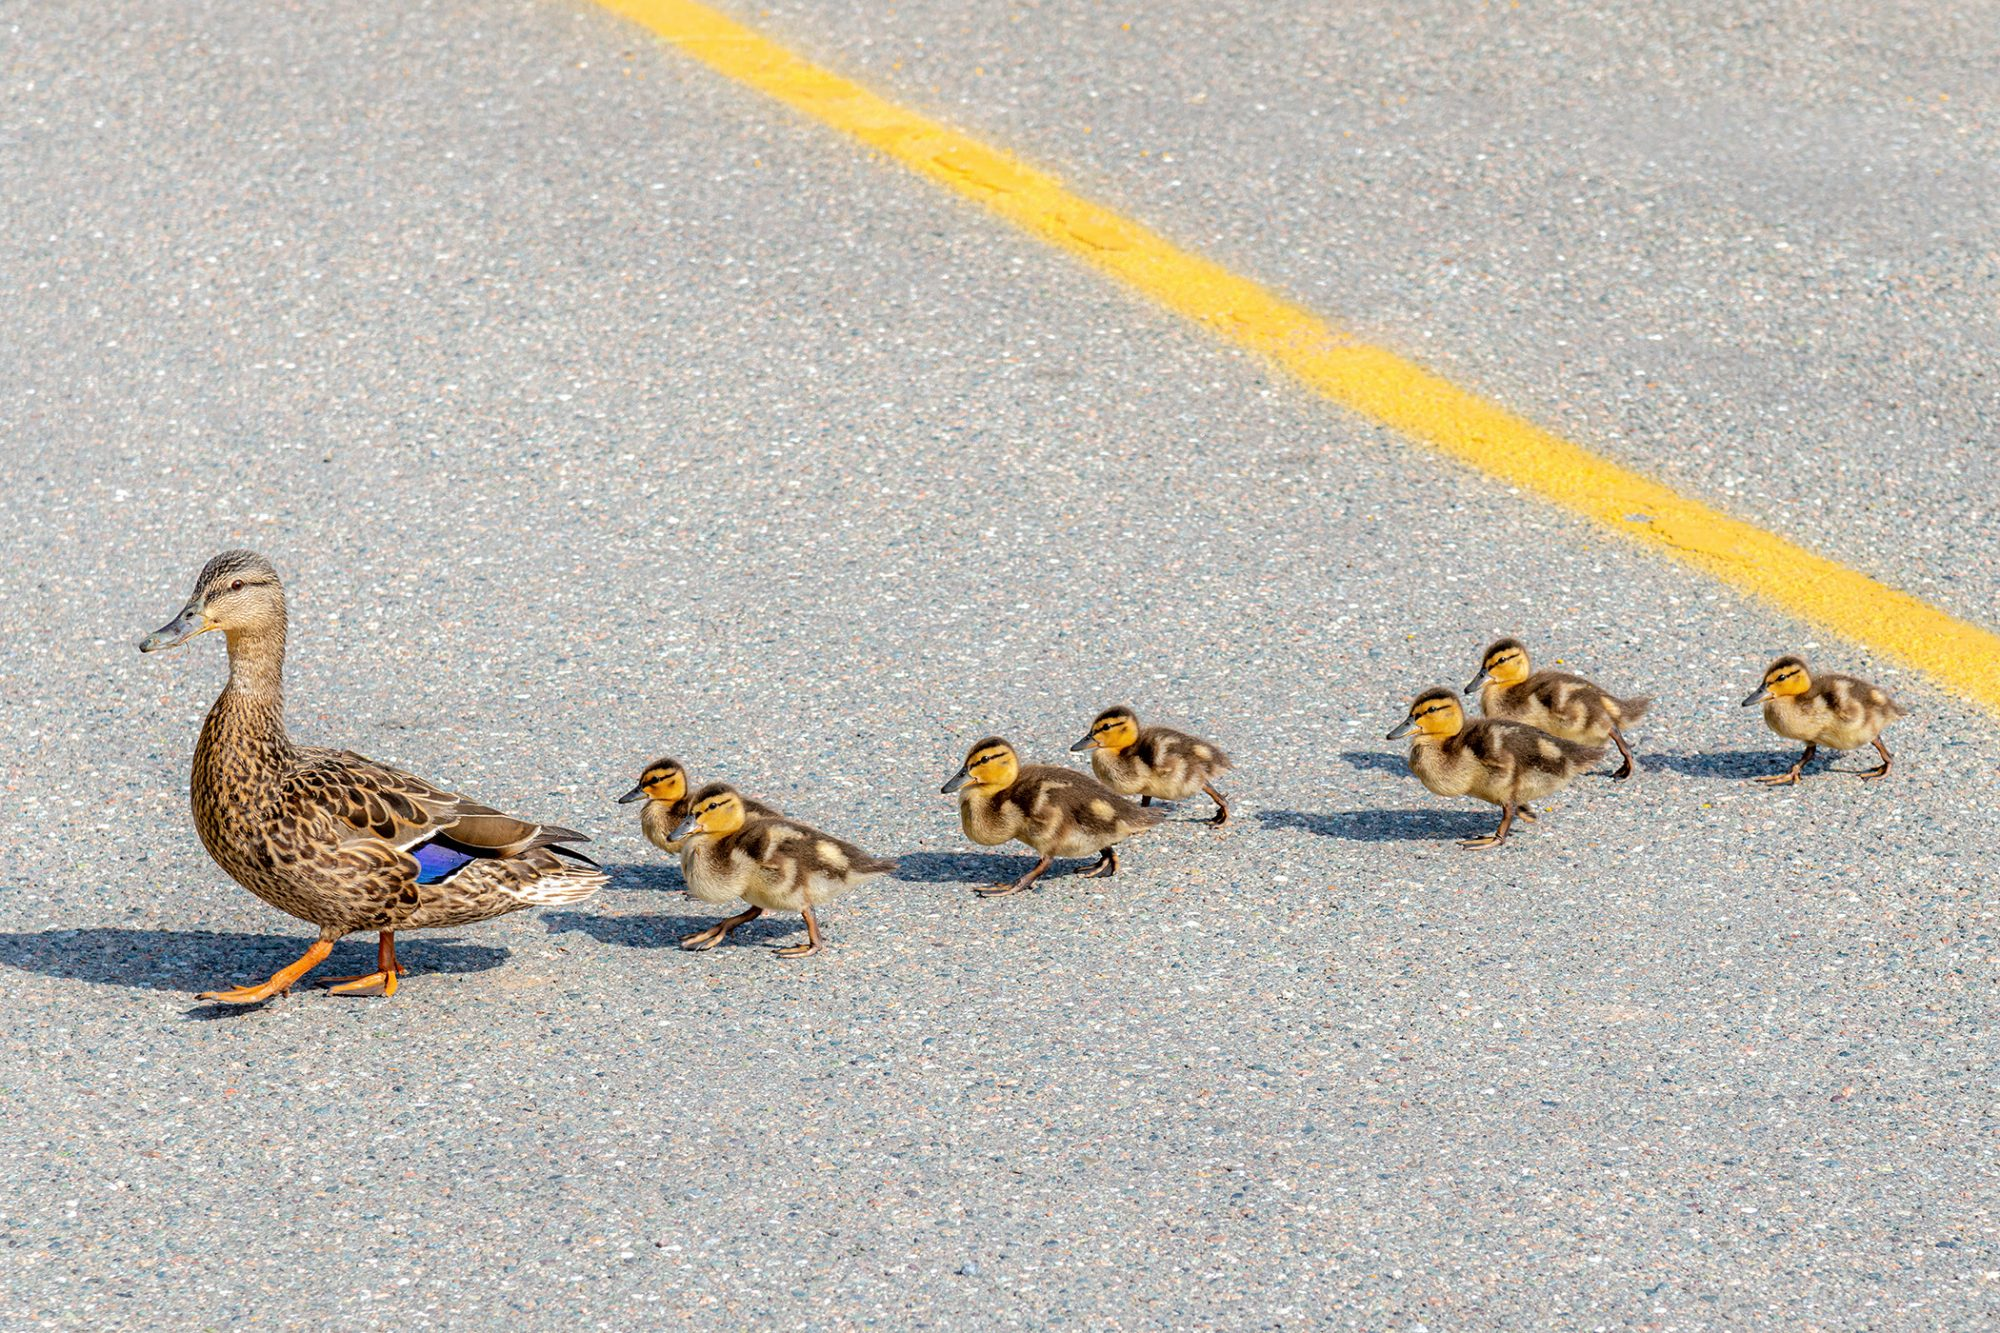 mother duck leading a trail of ducklings across the street